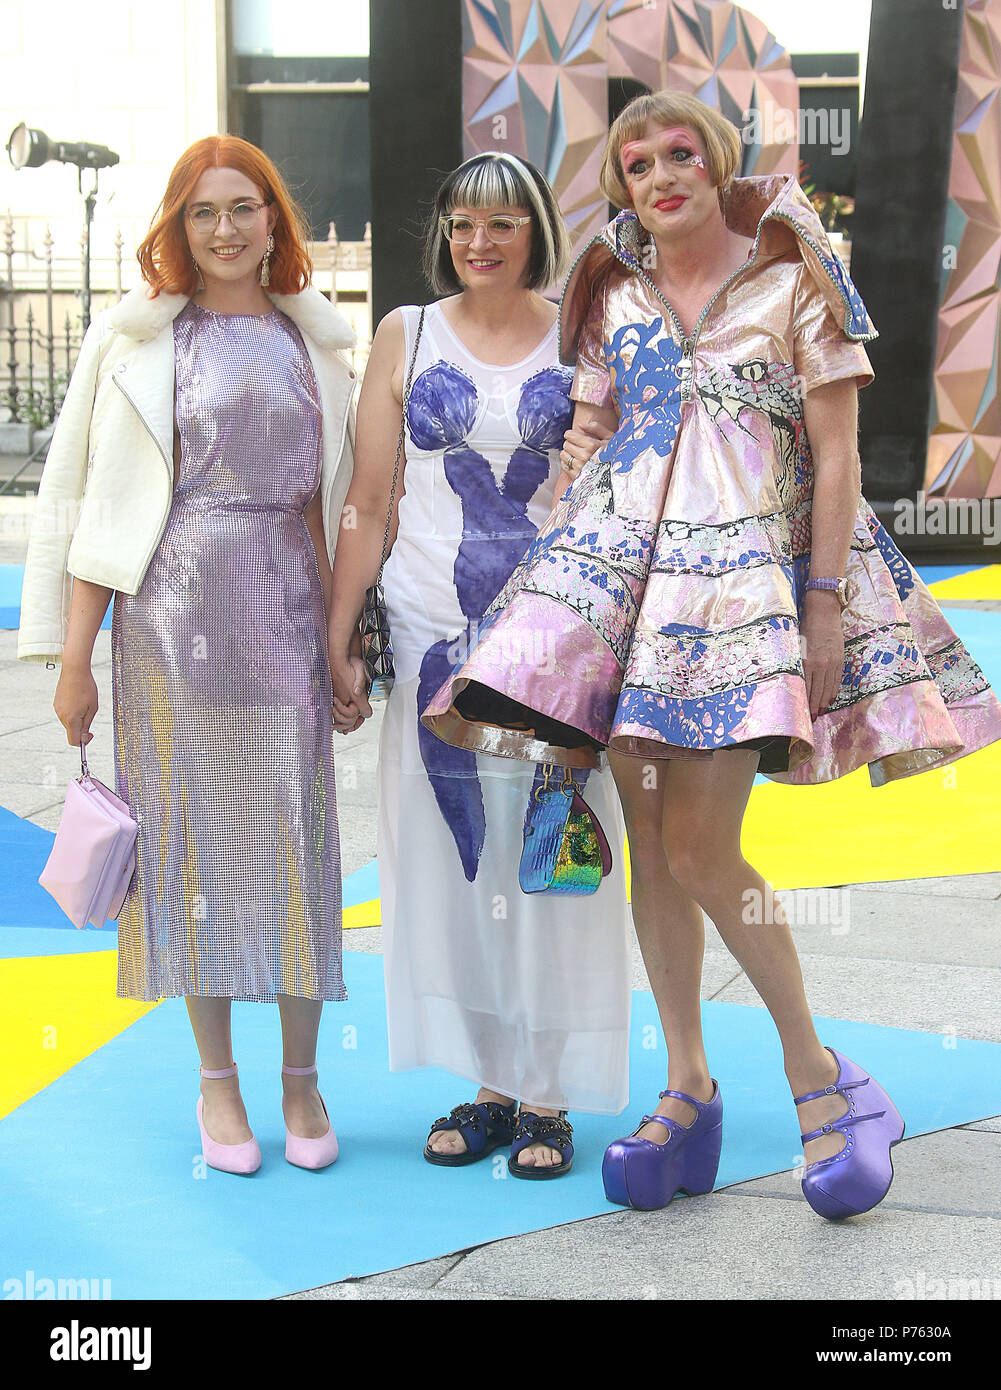 Jun 06, 2018 - Florence Perry, Philippa Perry and Grayson Perry attending Royal Academy Of Arts 250th Summer Exhibition Preview Party at Burlington Ho - Stock Image